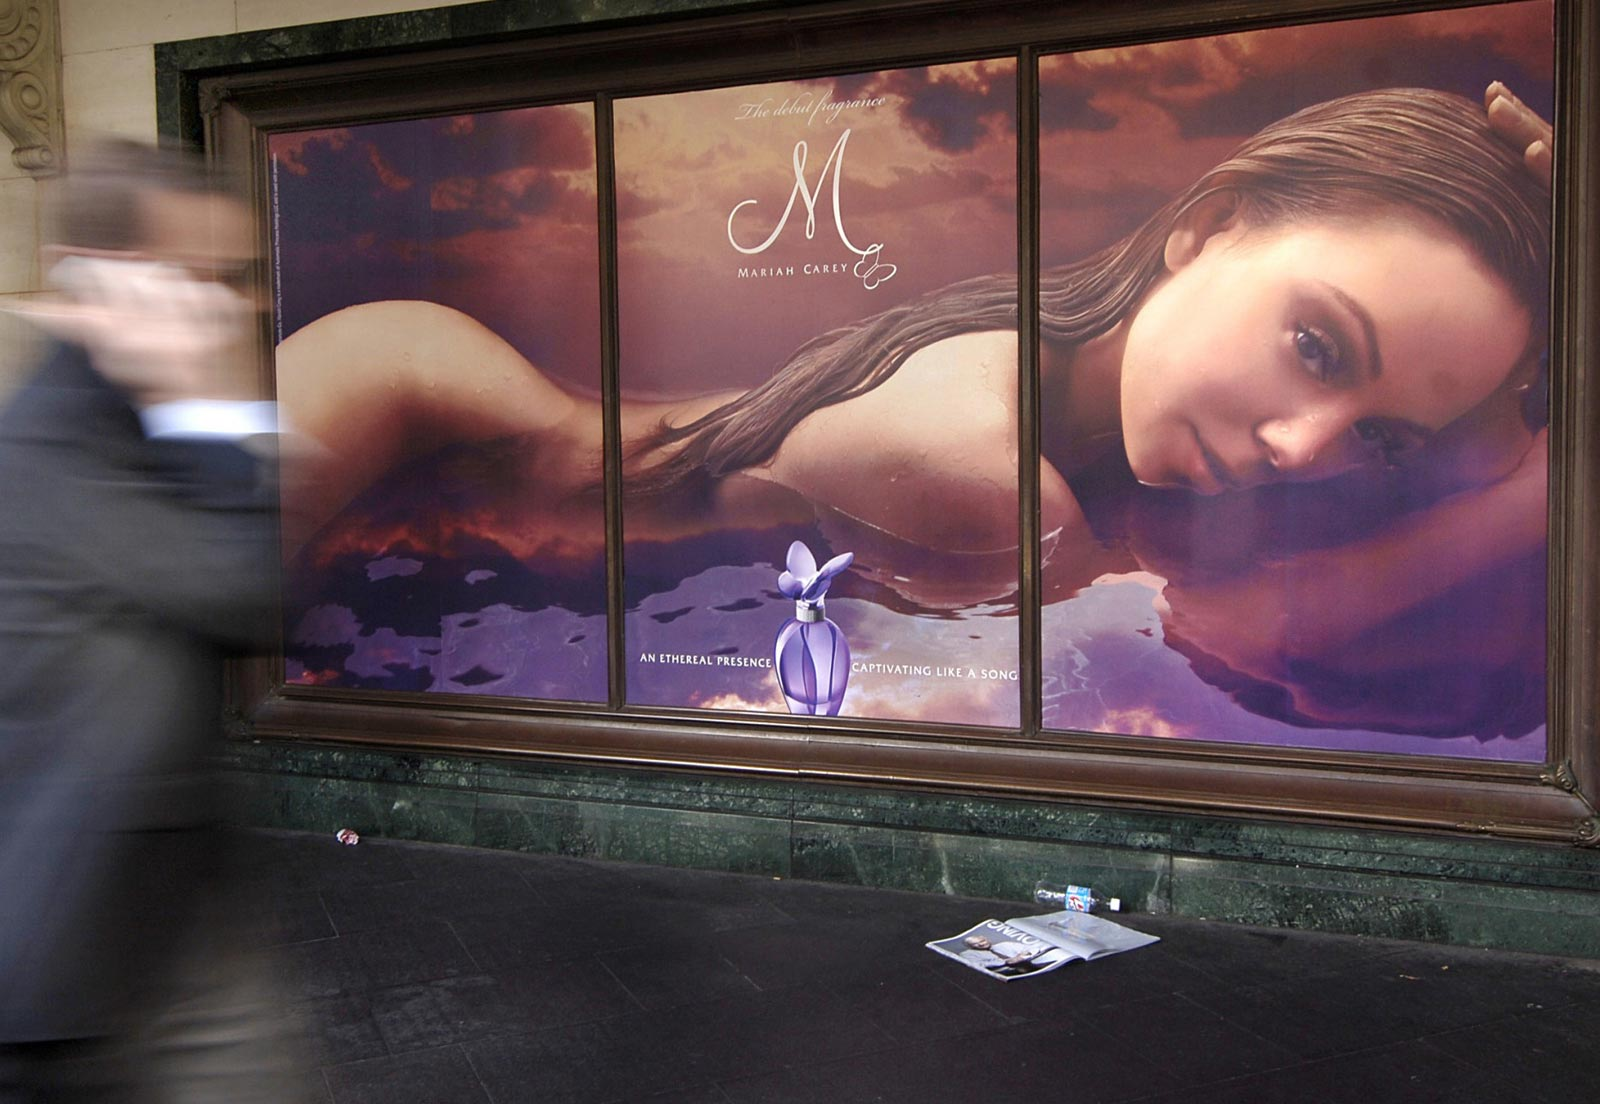 A man walks past an advertisement for perfume in Sydney, Australia. Photographer: Jack Atley/Bloomberg